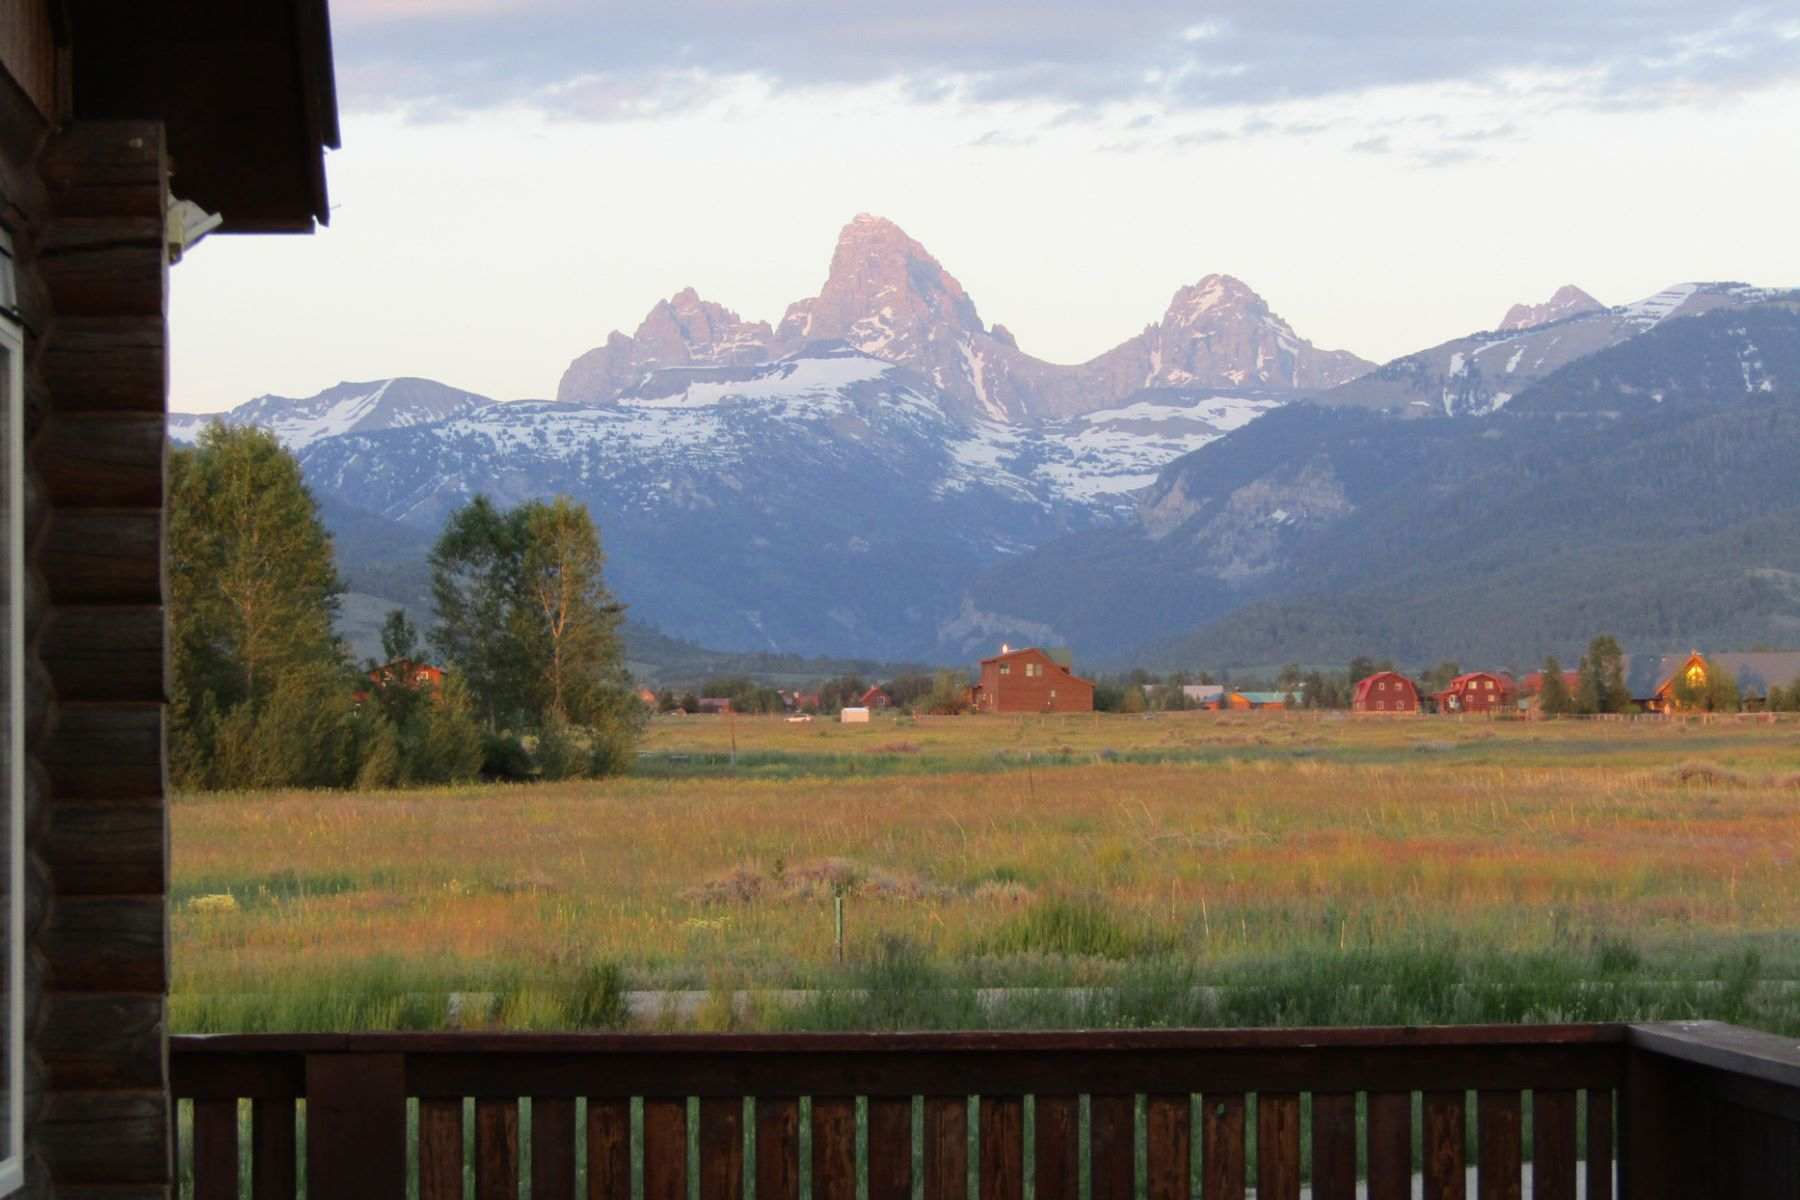 Casa Unifamiliar por un Venta en Log Home with Teton Views 499 Wild Cat Canyon Driggs, Idaho 83422 Estados Unidos